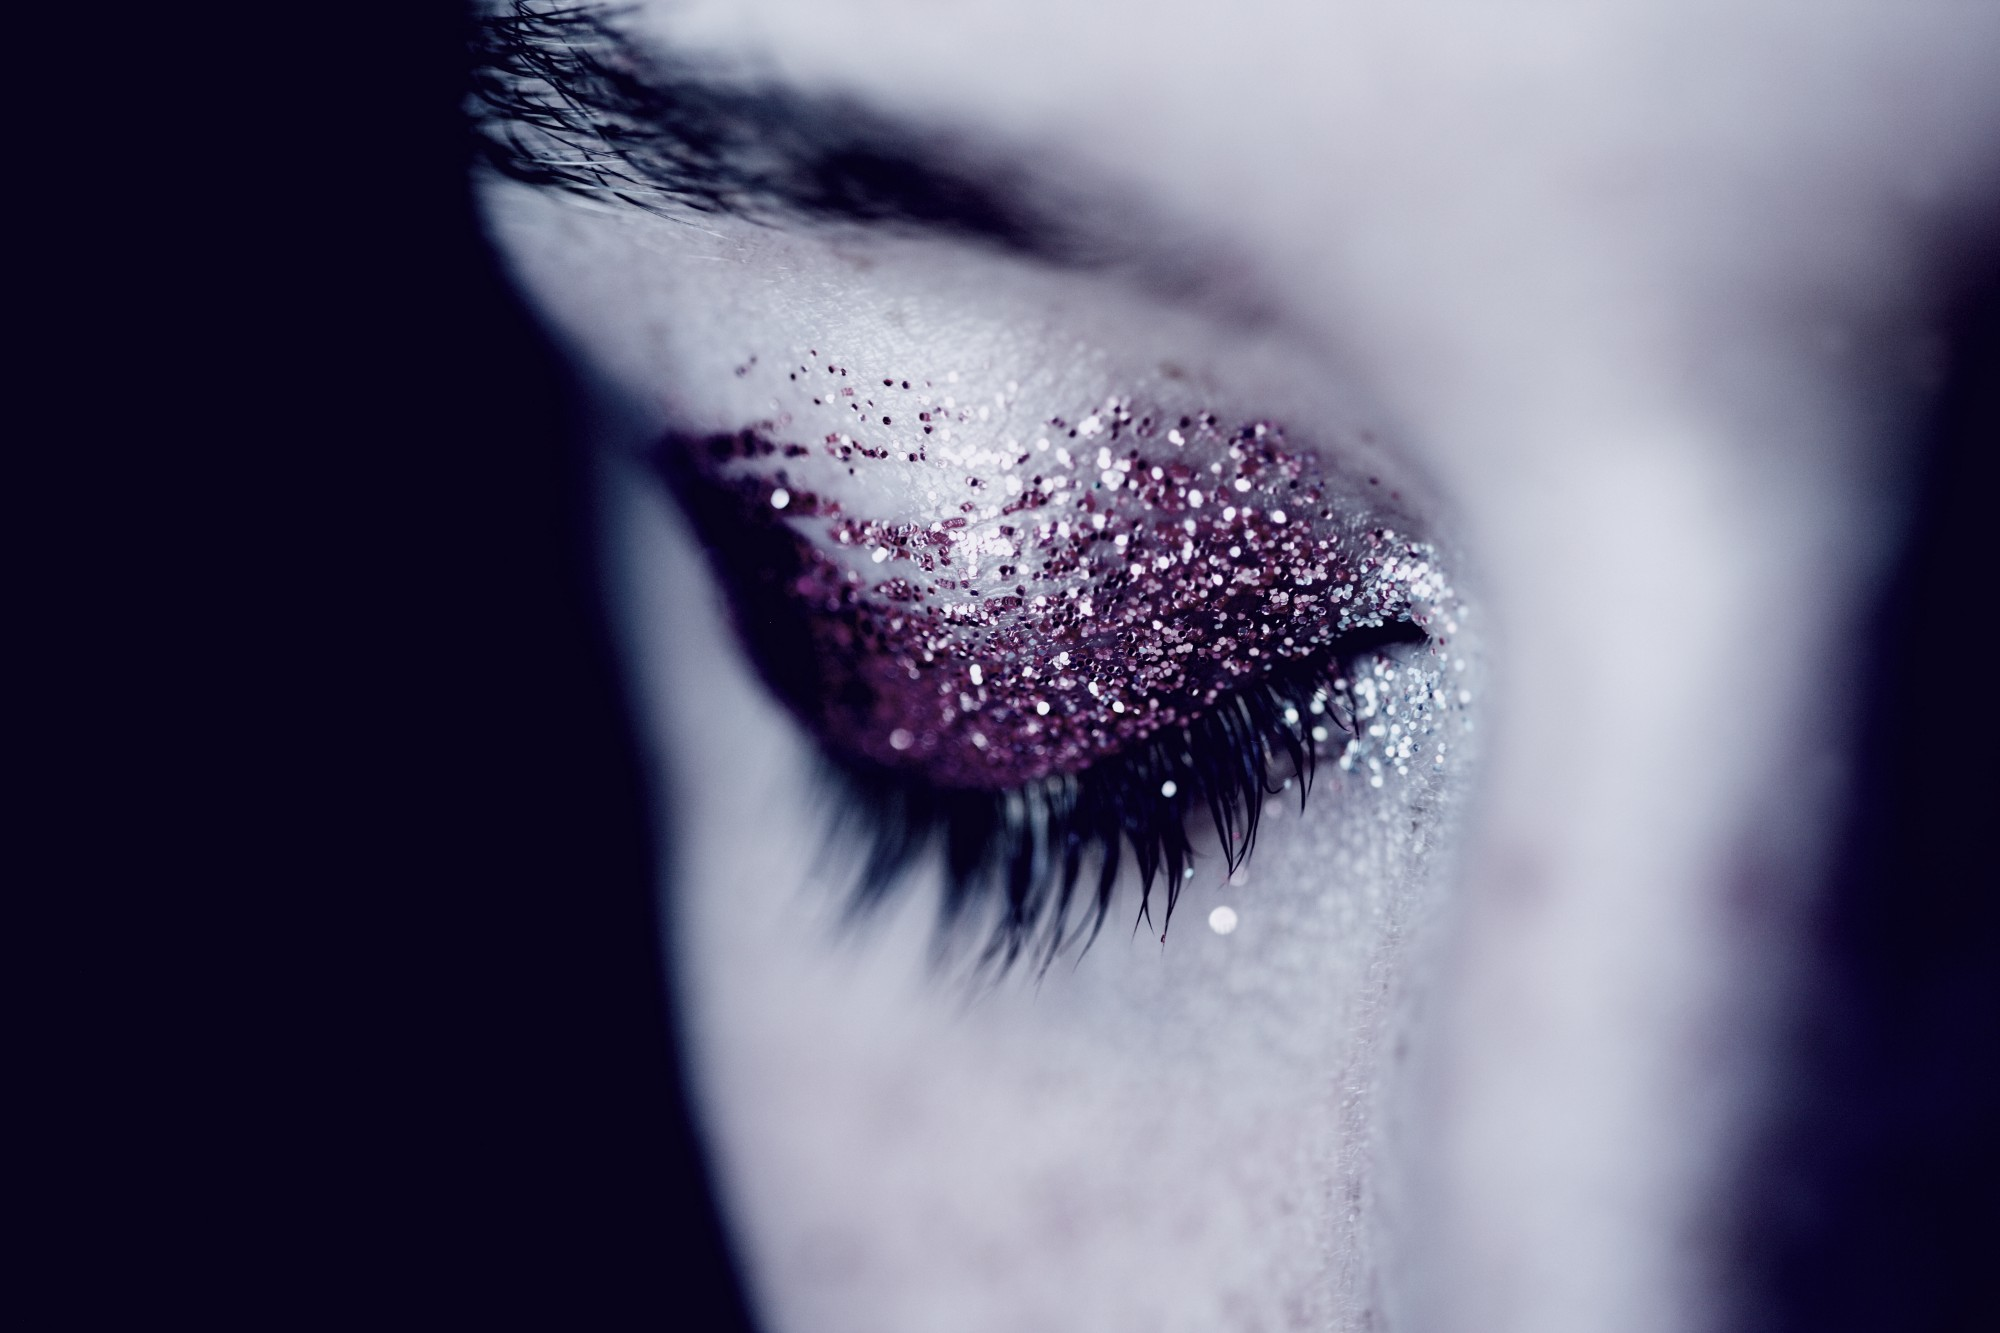 Half a woman's face with a pink glittered eyelid